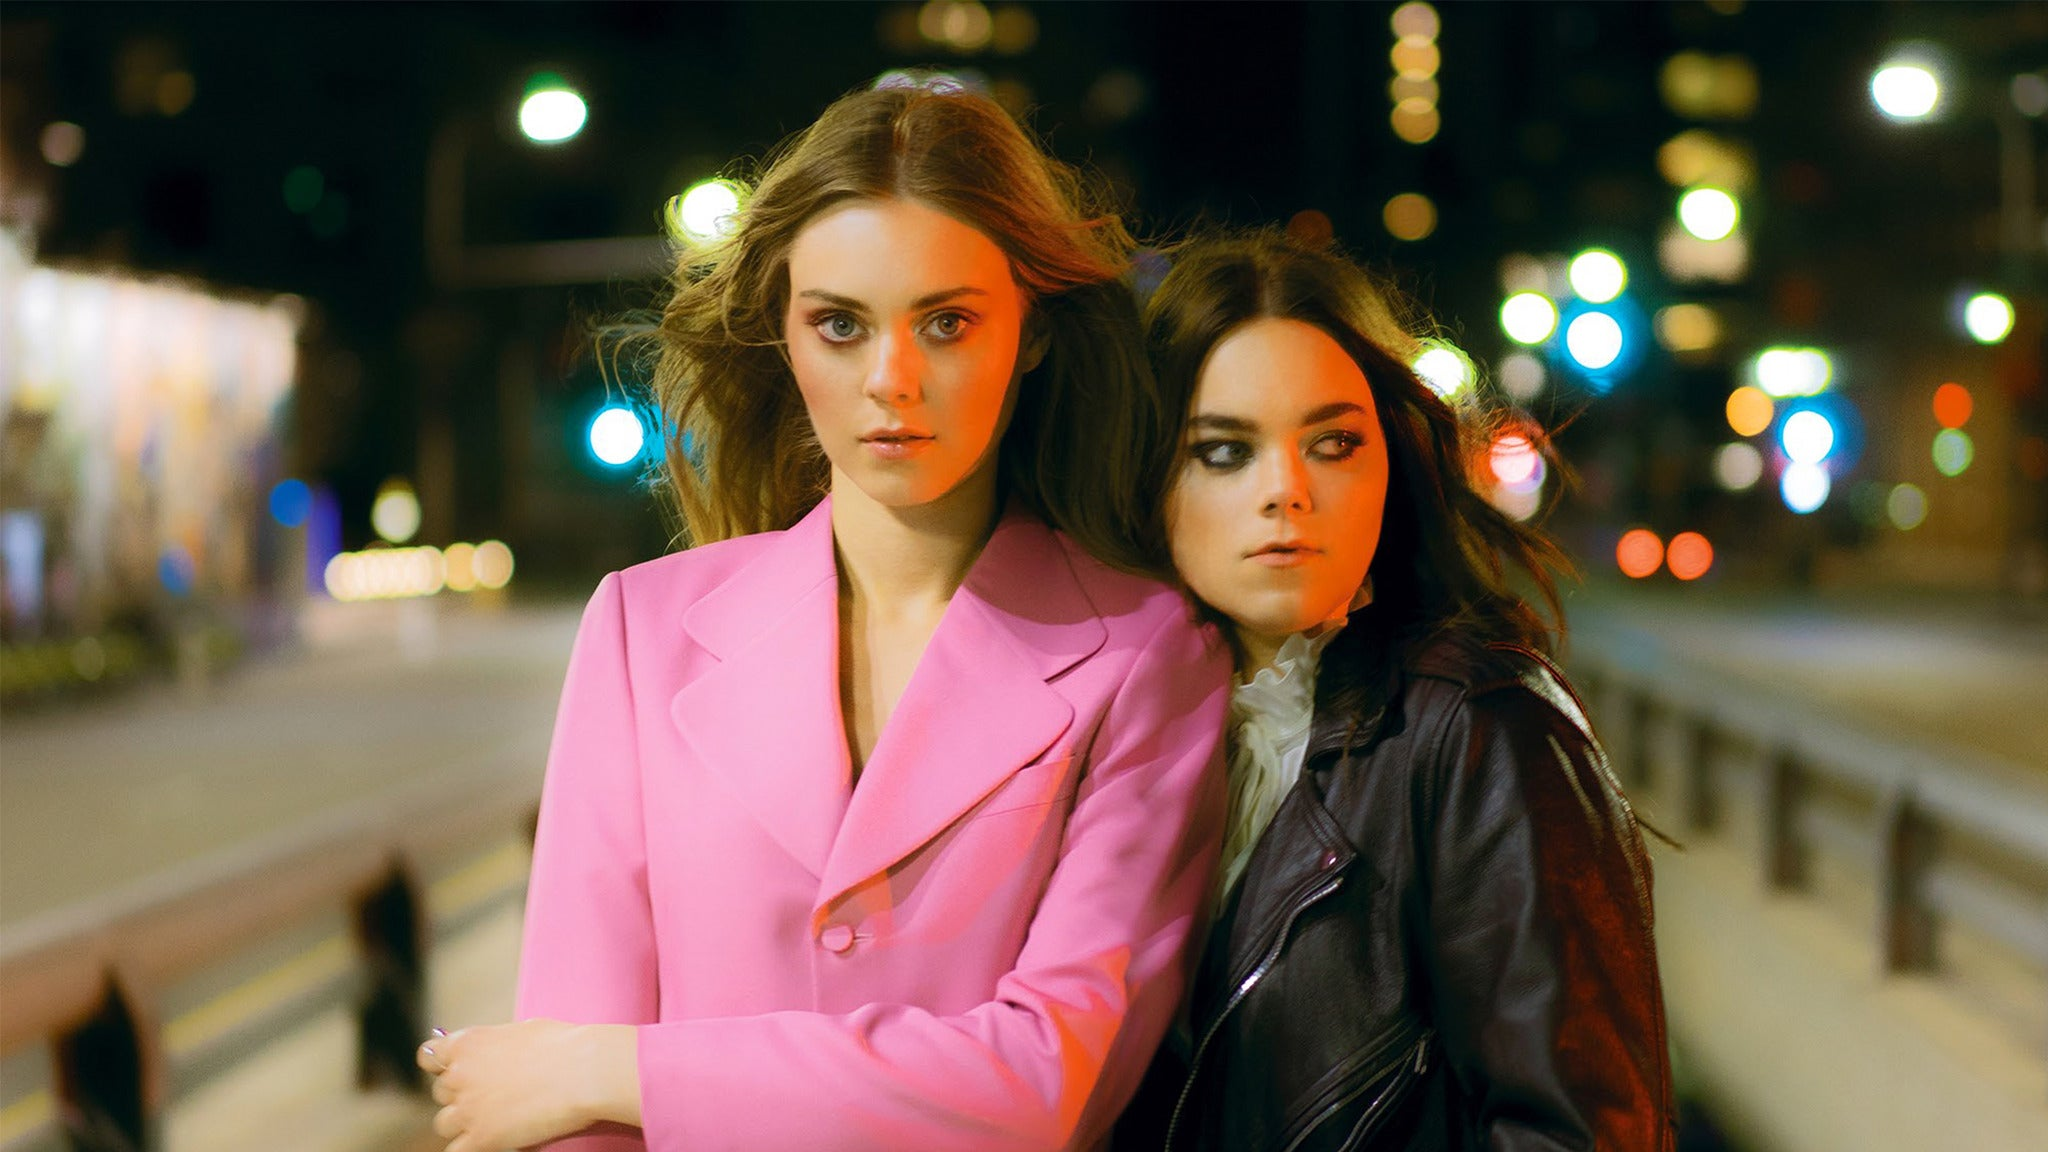 First Aid Kit at Greek Theatre-Los Angeles - Los Angeles, CA 90027